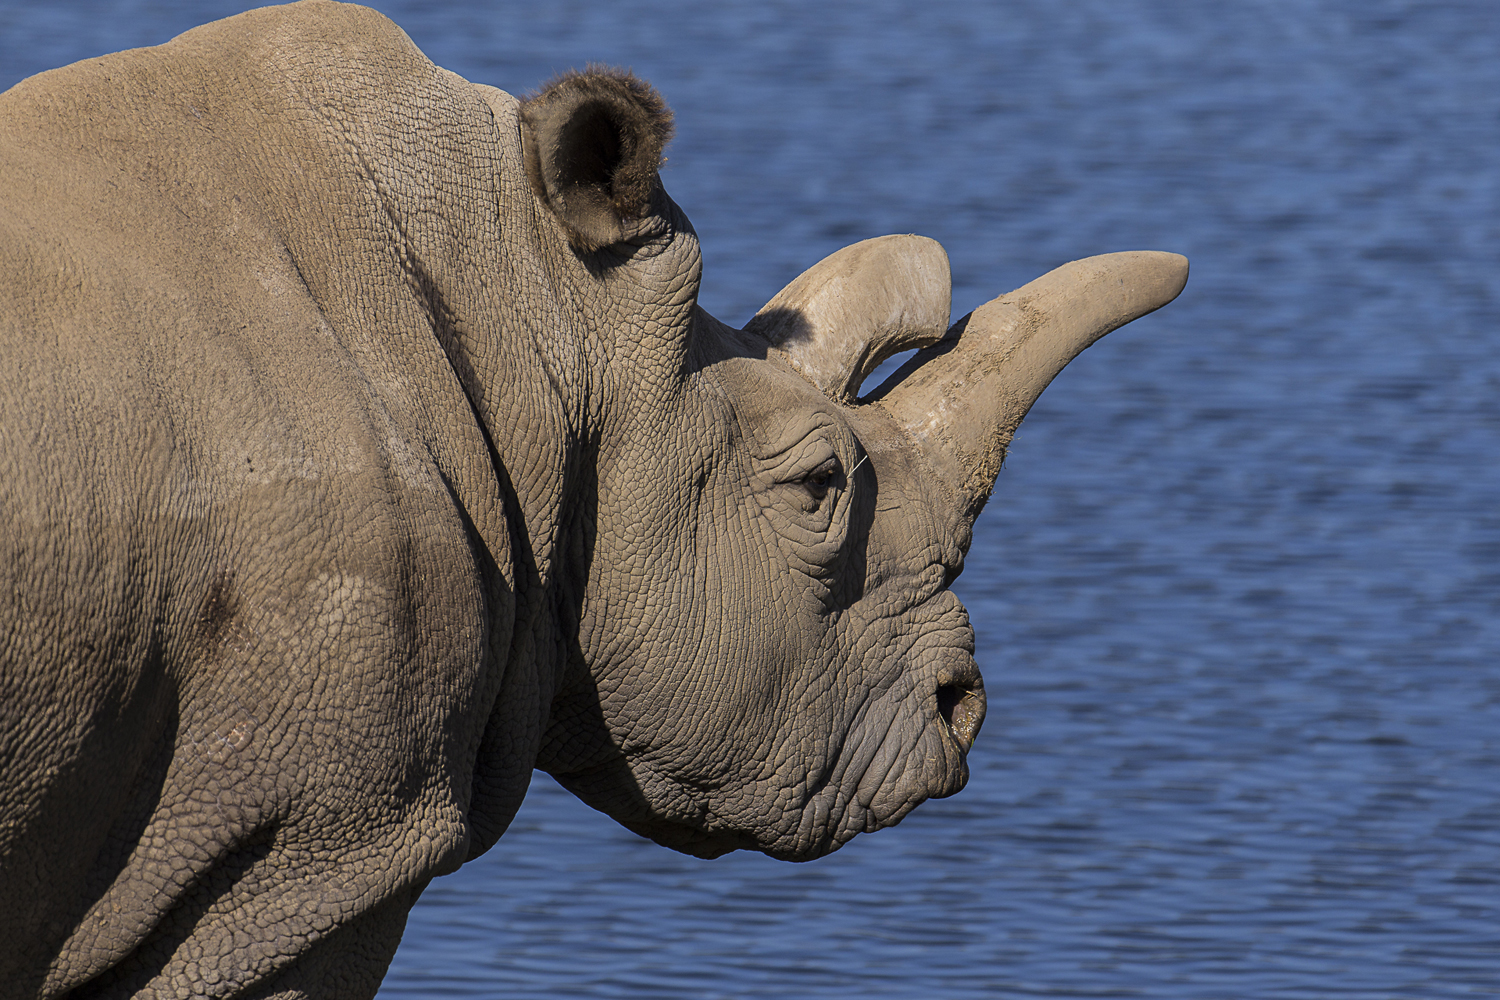 The San Diego Zoo Safari Park's iconic northern white rhinoceros, Nola, passed away November 22, 2015